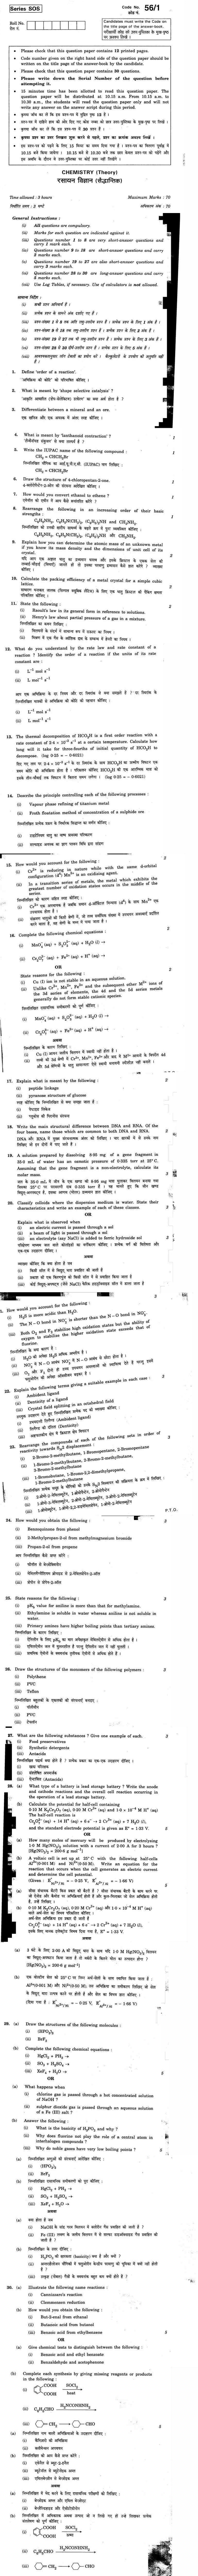 CBSE Class XII Previous Year Question Papers 2011 Chemistry